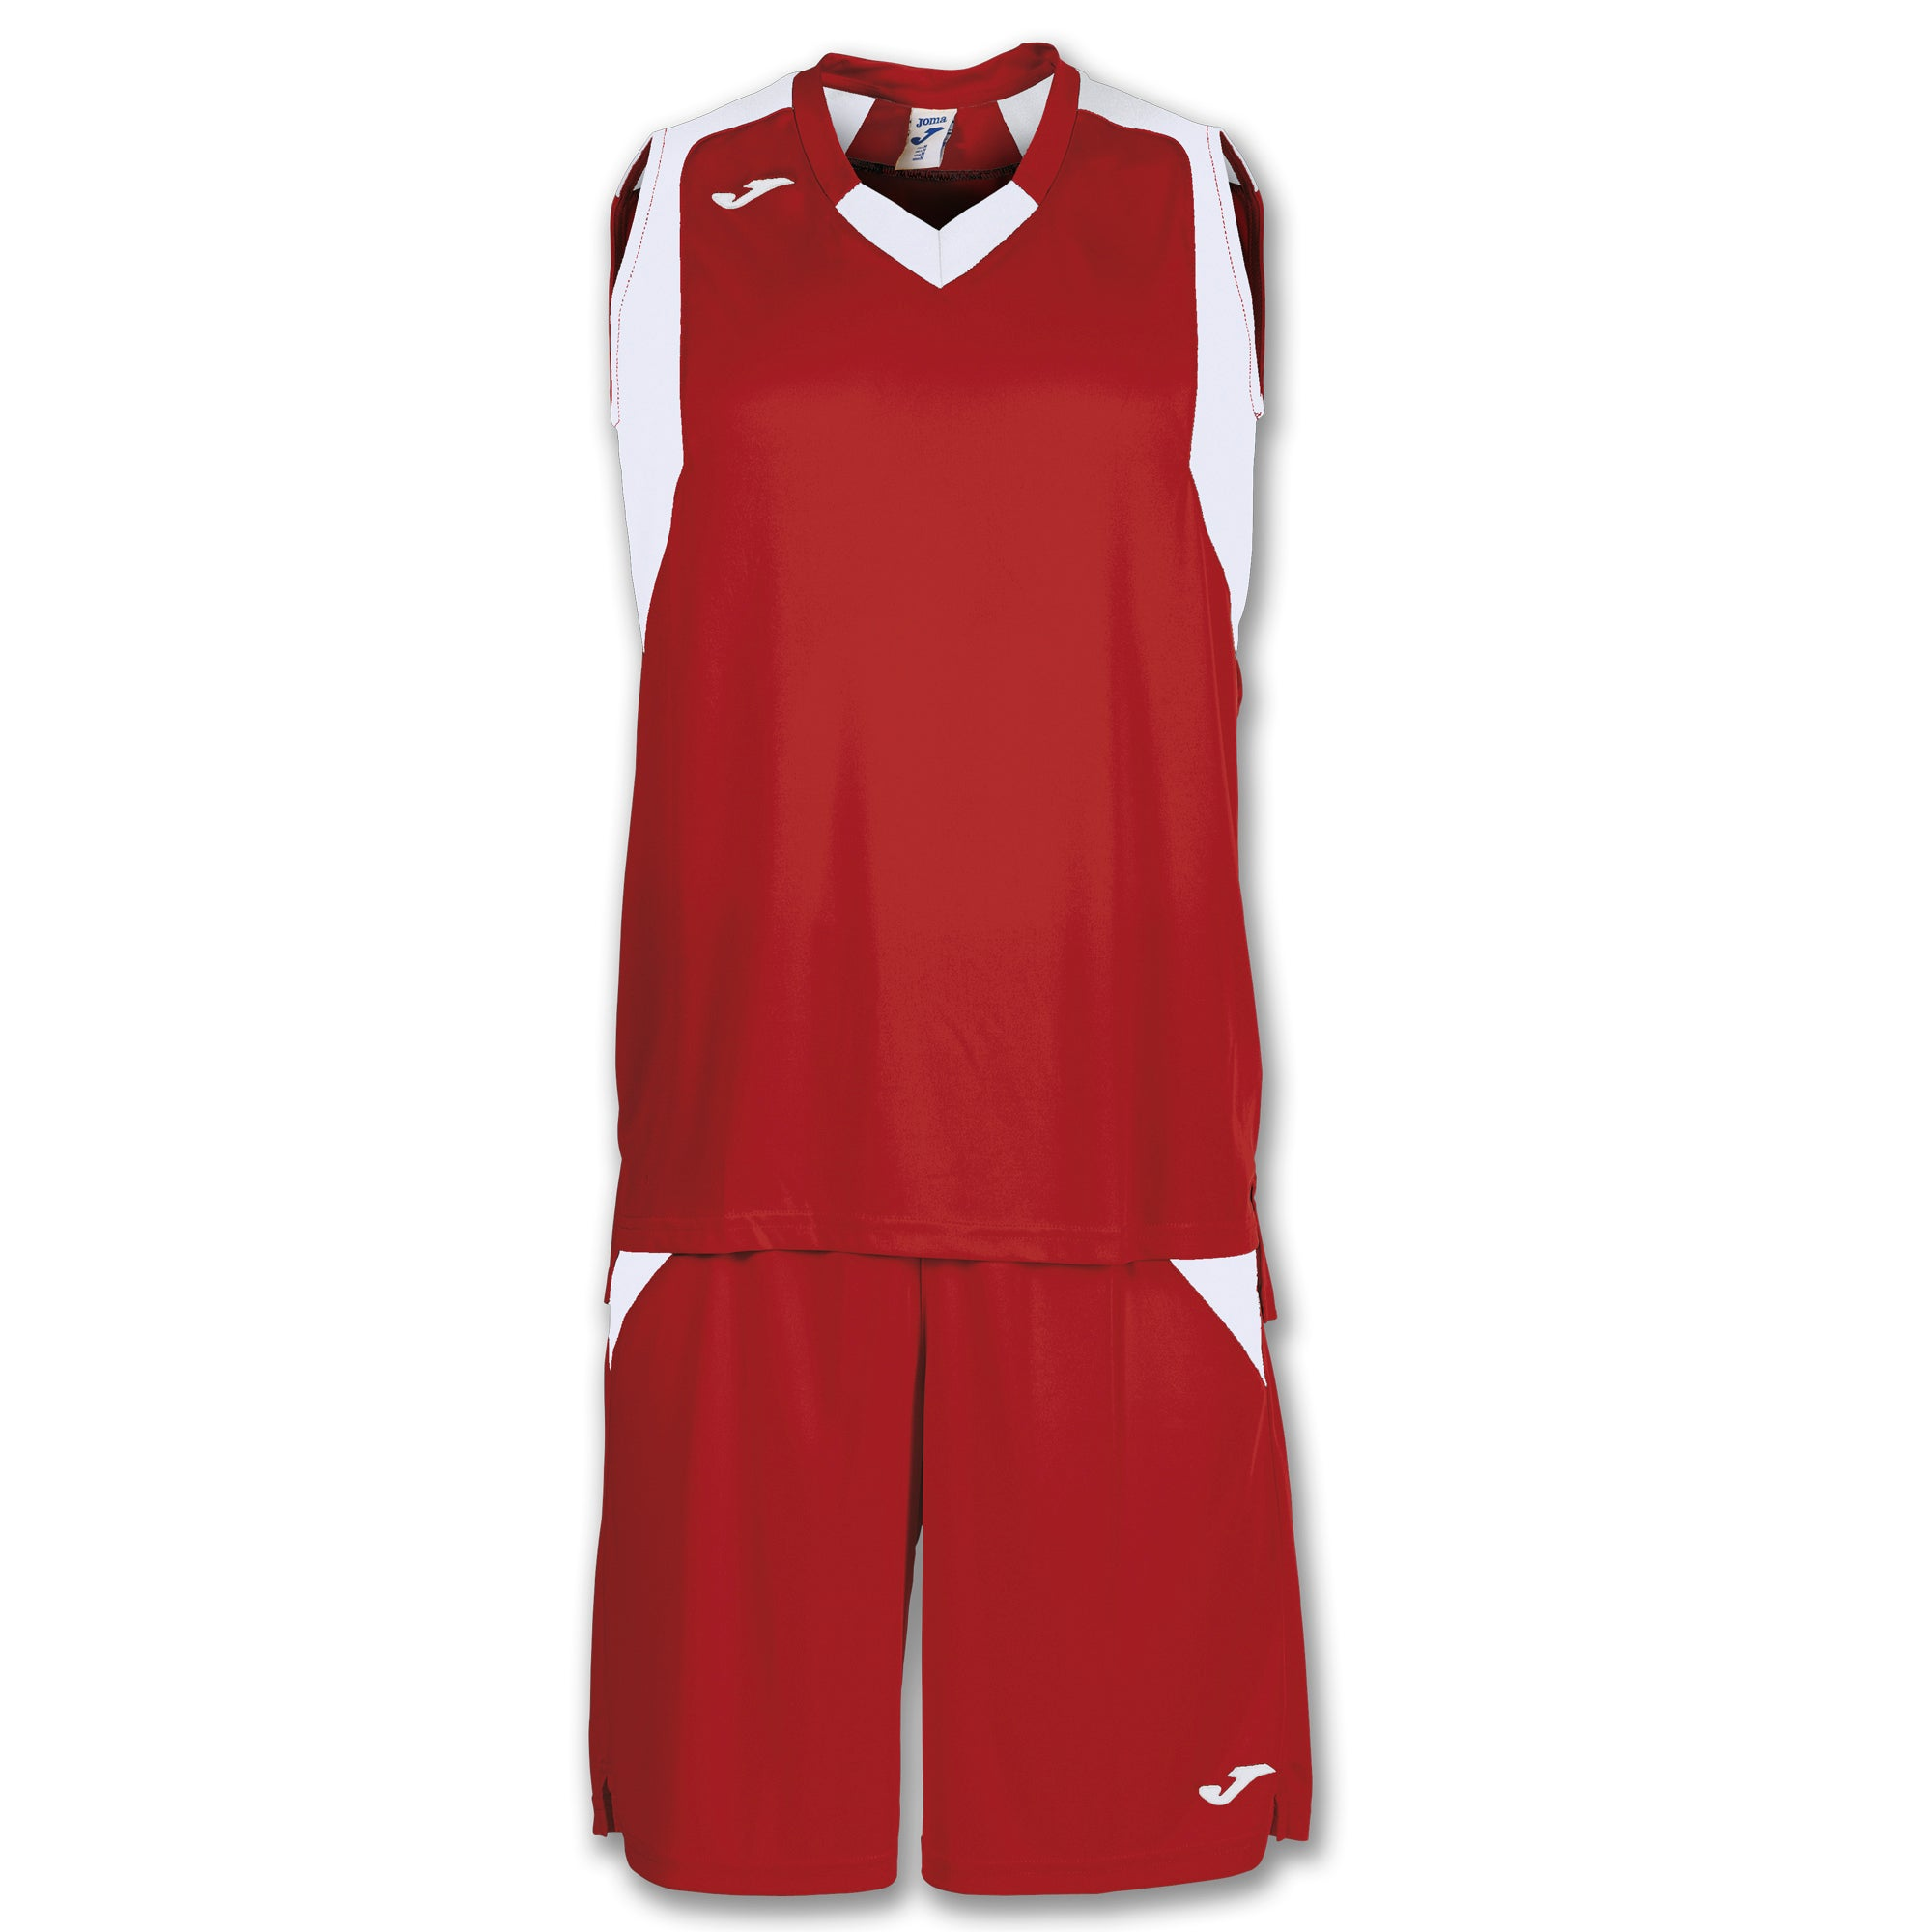 Teamwear - Joma Final Kit - Red/White - JO-101115-602